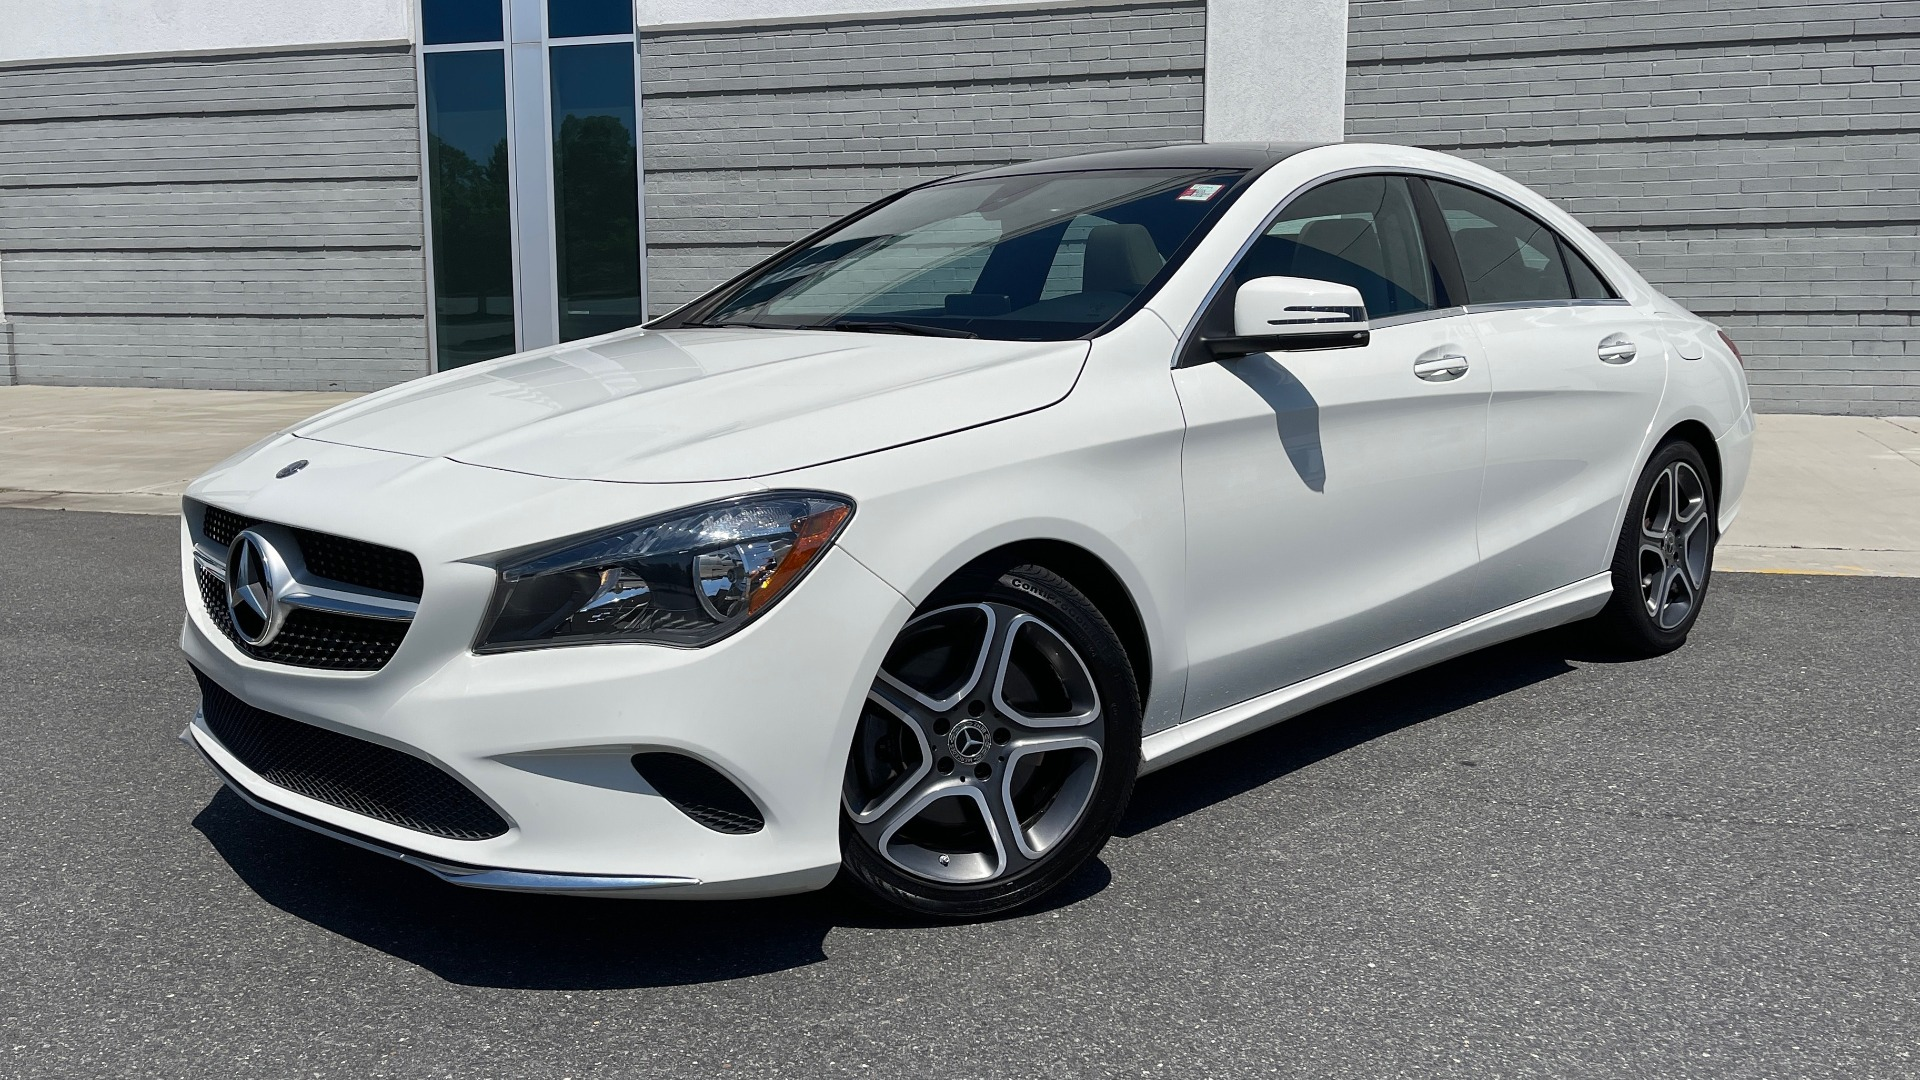 Used 2018 Mercedes-Benz CLA 250 PREMIUM / CONV PKG / APPLE / PANO-ROOF / REARVIEW for sale $29,795 at Formula Imports in Charlotte NC 28227 1